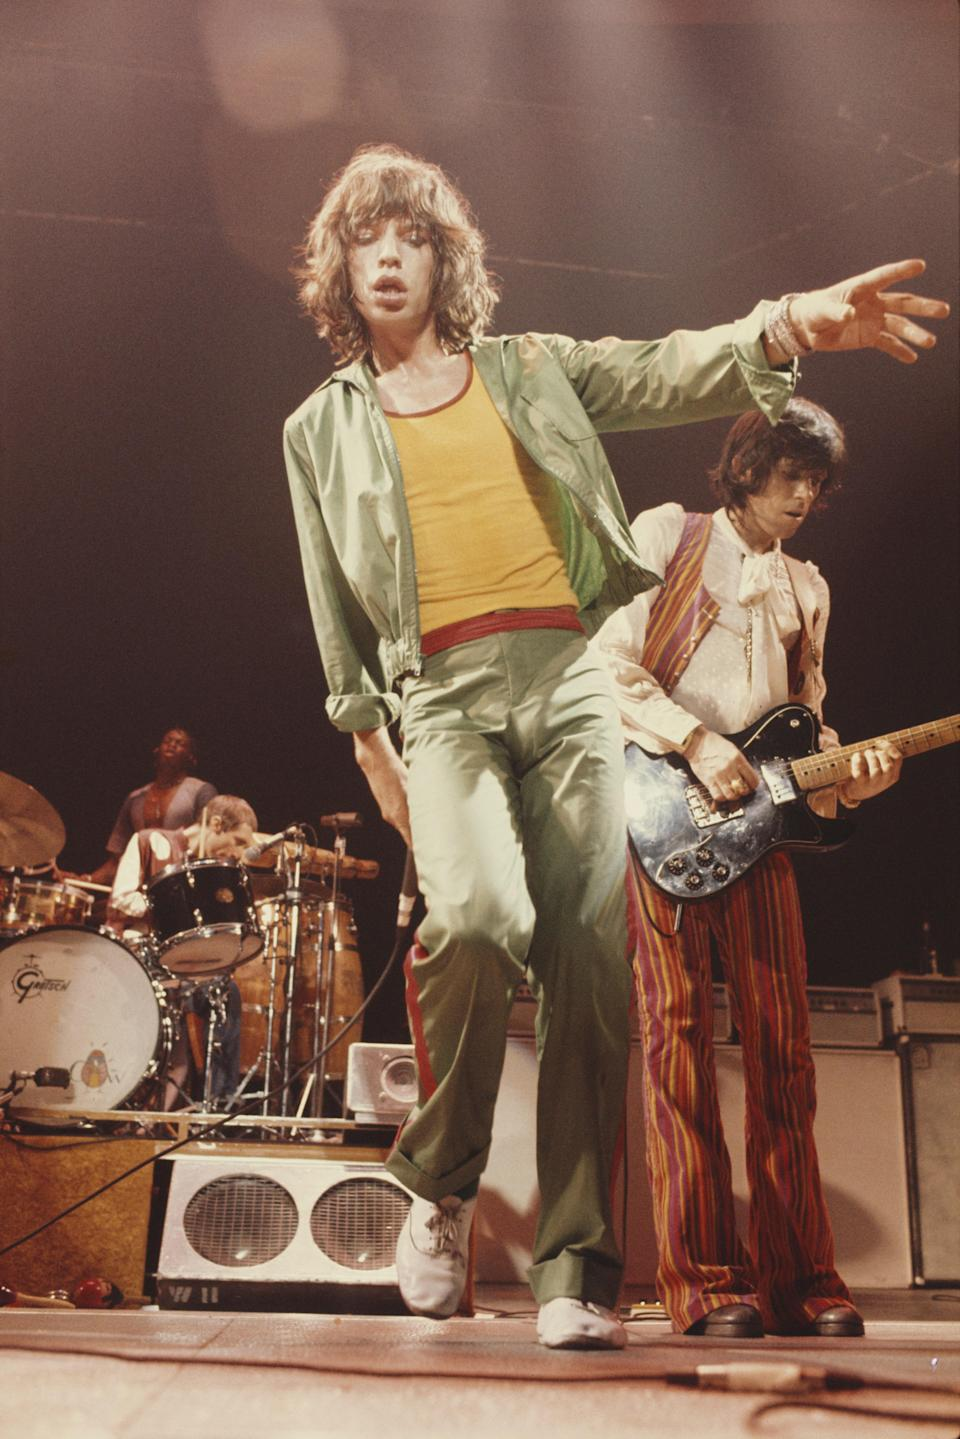 Mick Jagger in his Repettos.